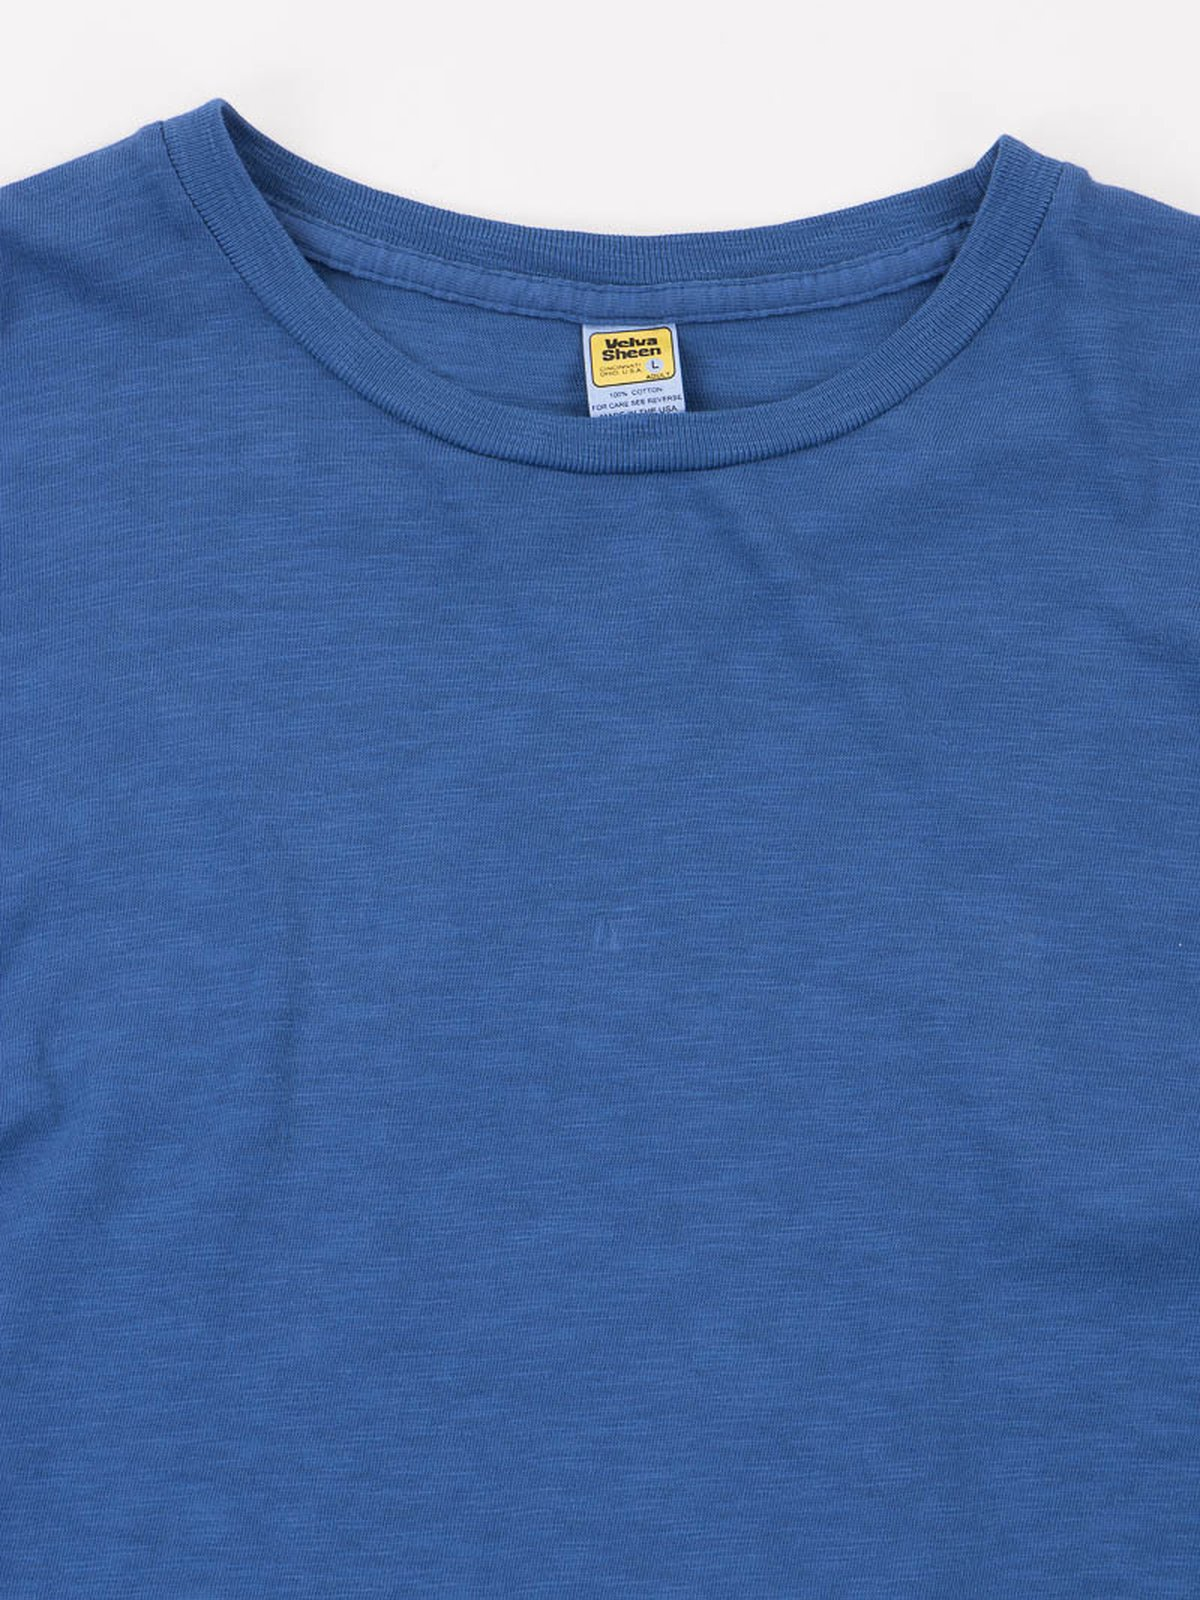 Blue Rolled Regular Tee - Image 3